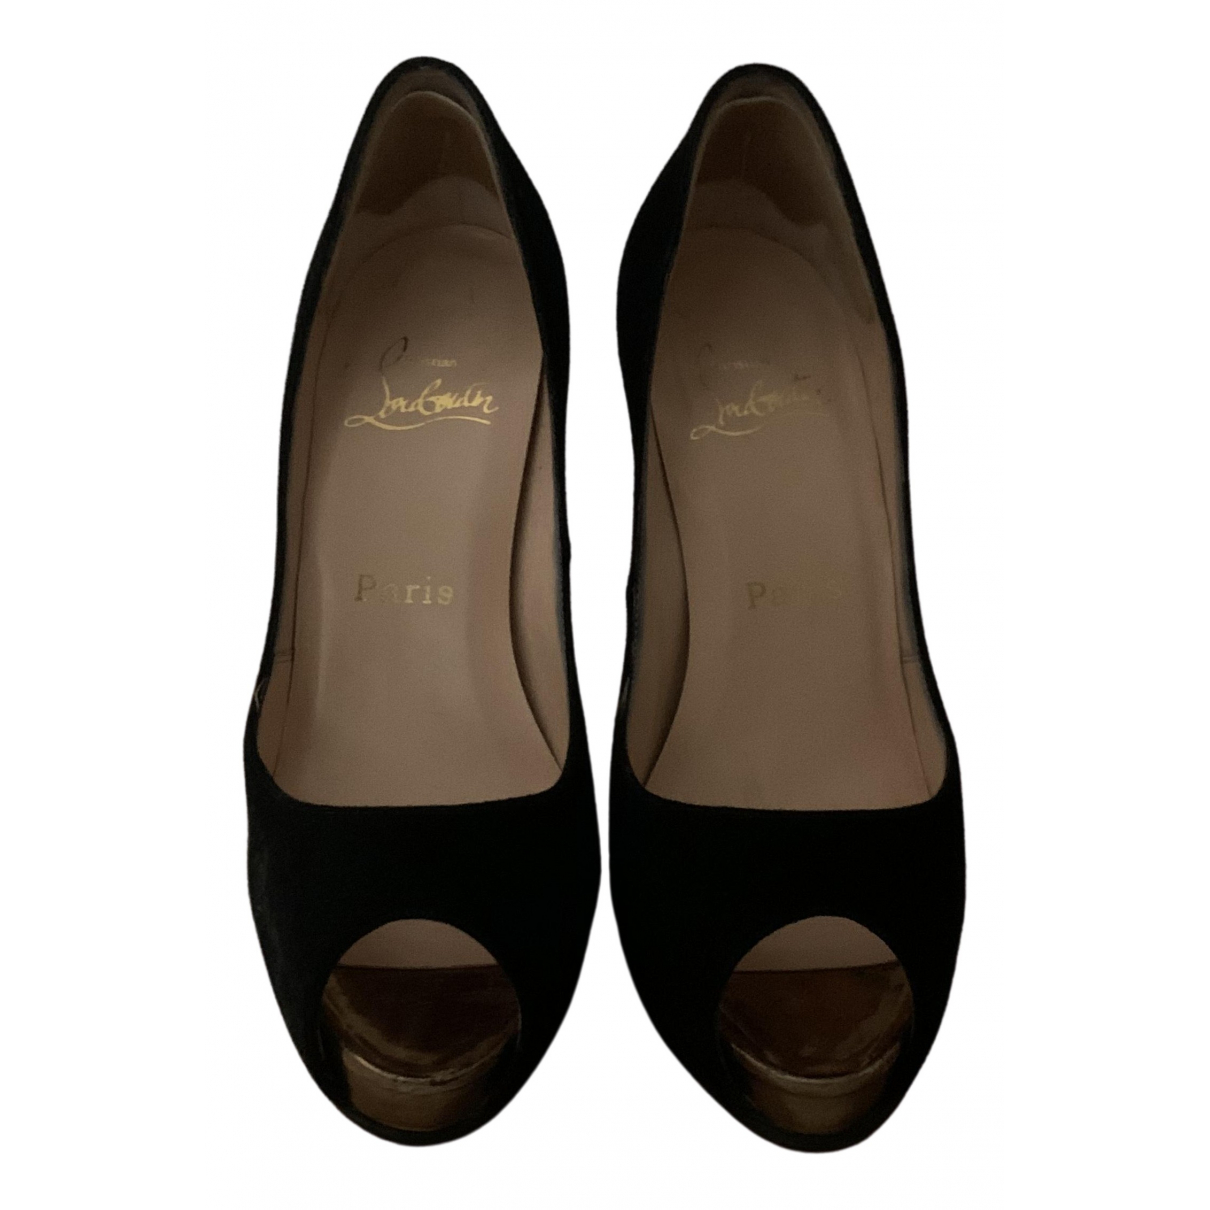 Christian Louboutin Very Privé Black Suede Heels for Women 6 US